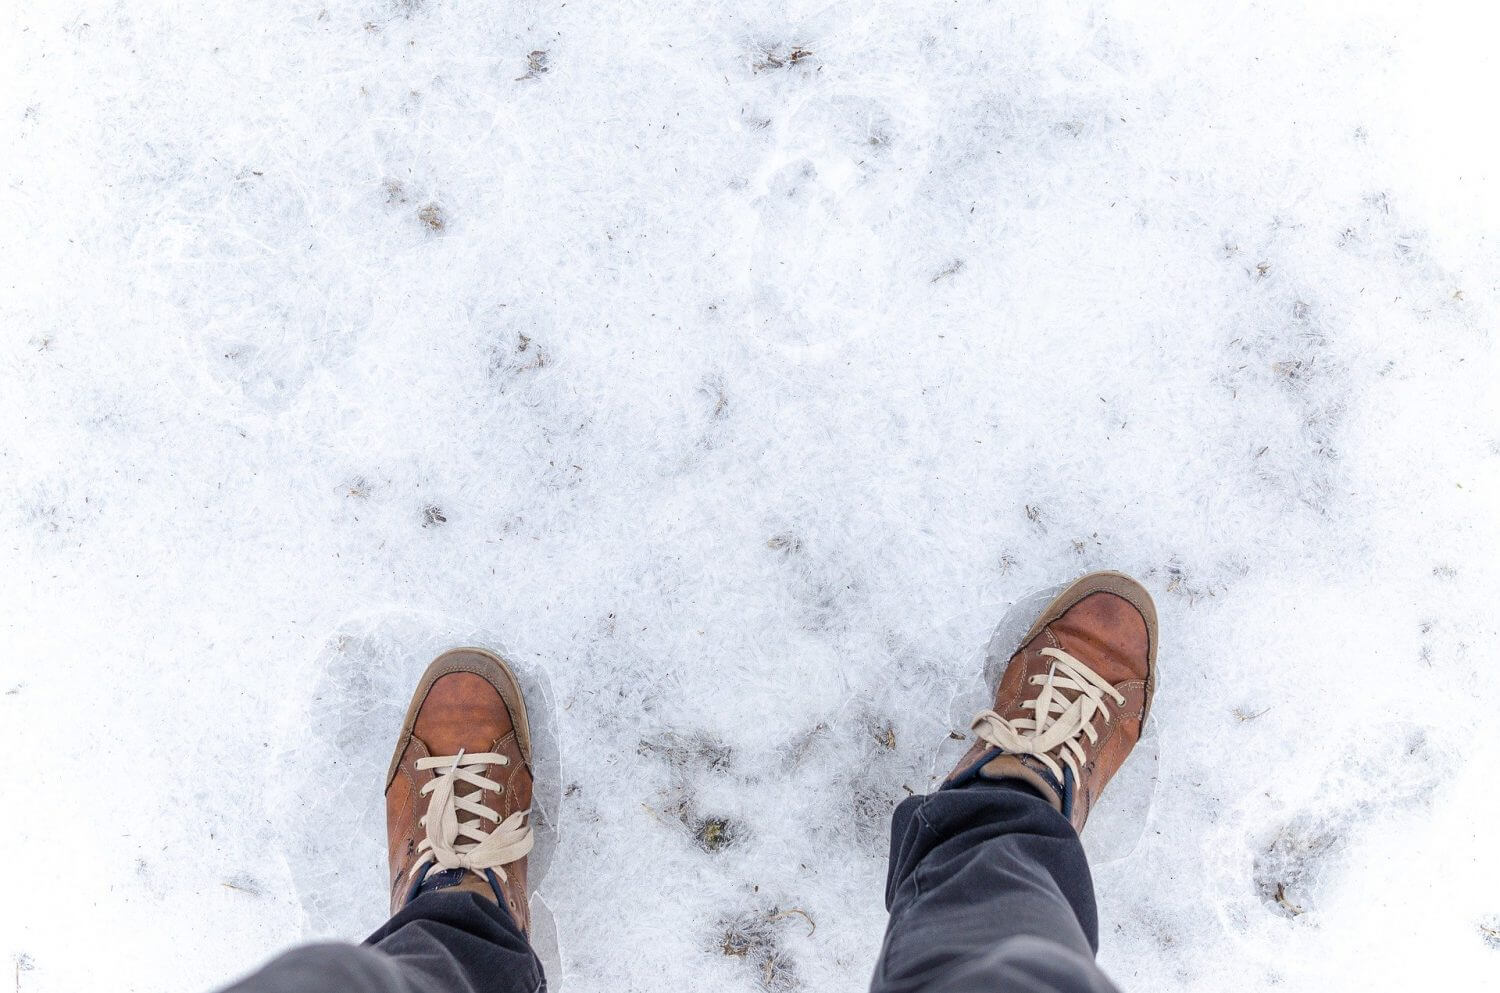 Slip and fall safety guide for this winter